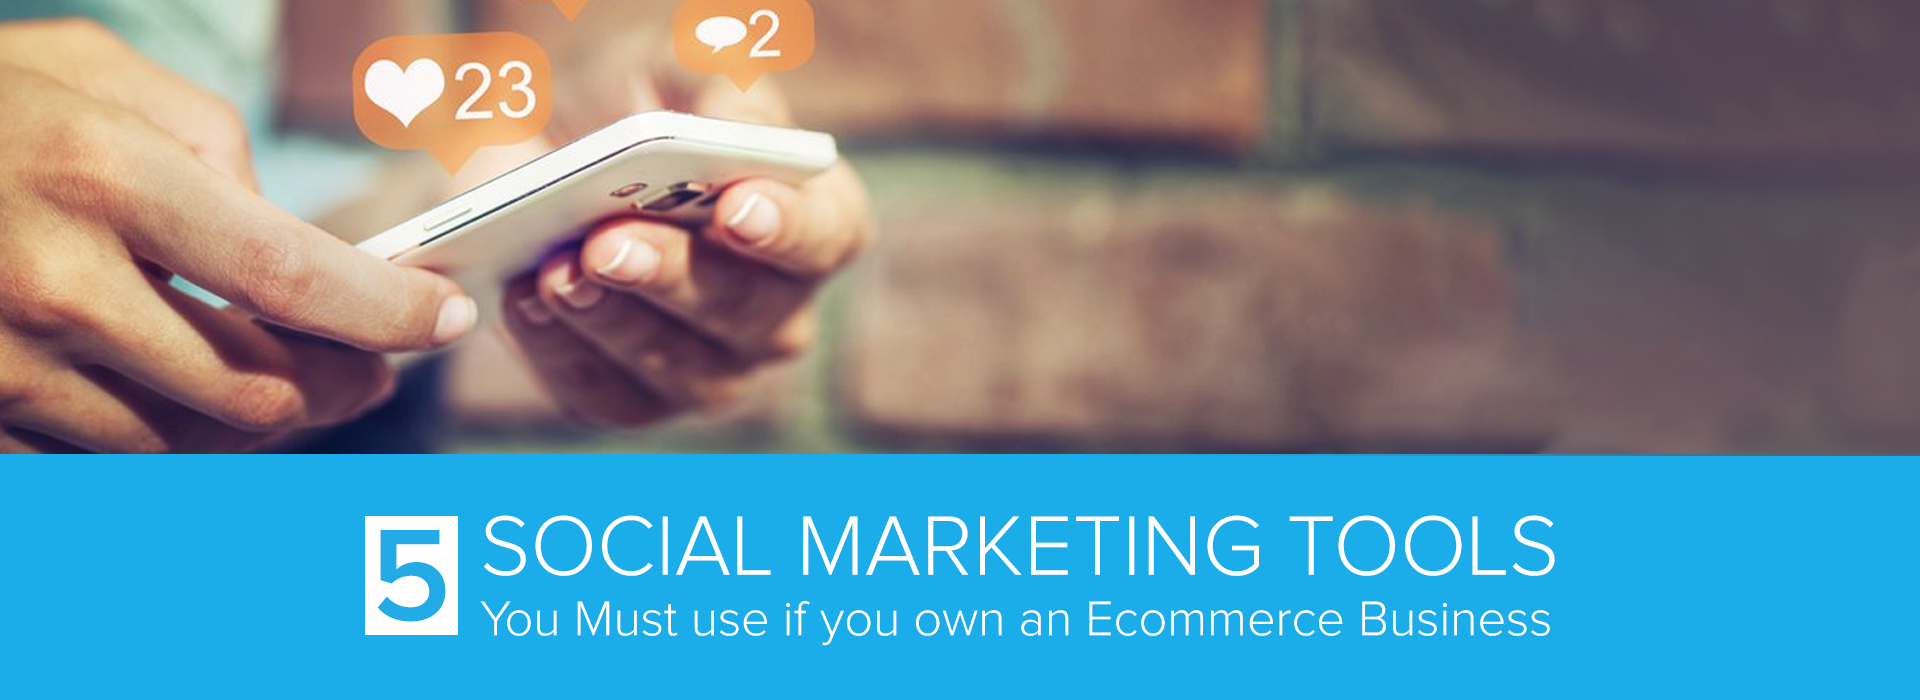 Social-Marketing-Tools-You-Must-use-if-you-own-an-Ecommerce-Business